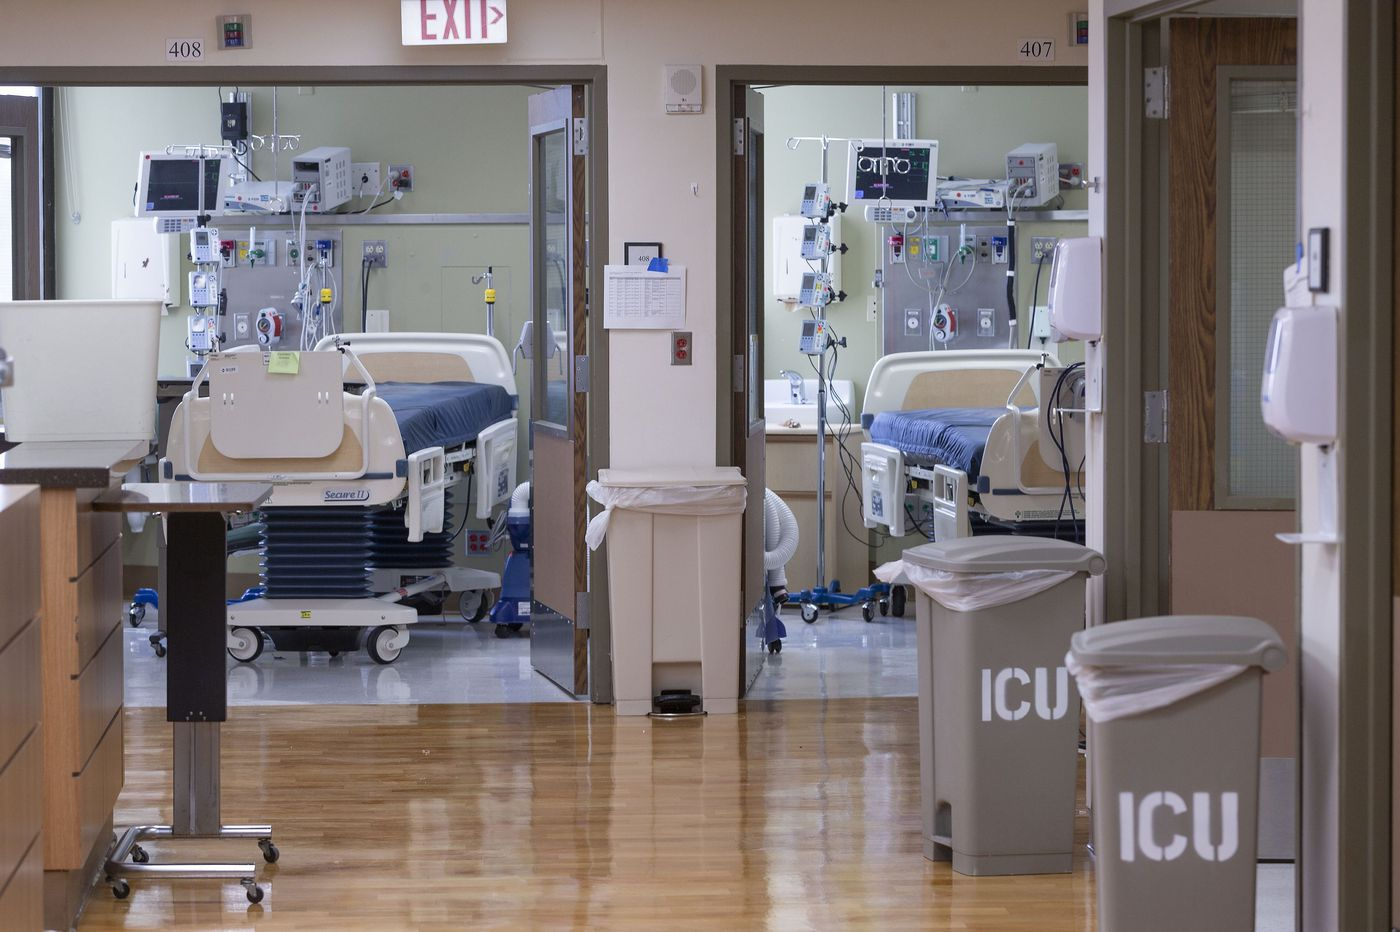 Another COVID inequity: Low-income and rural communities lack access to ICU beds, Penn study finds